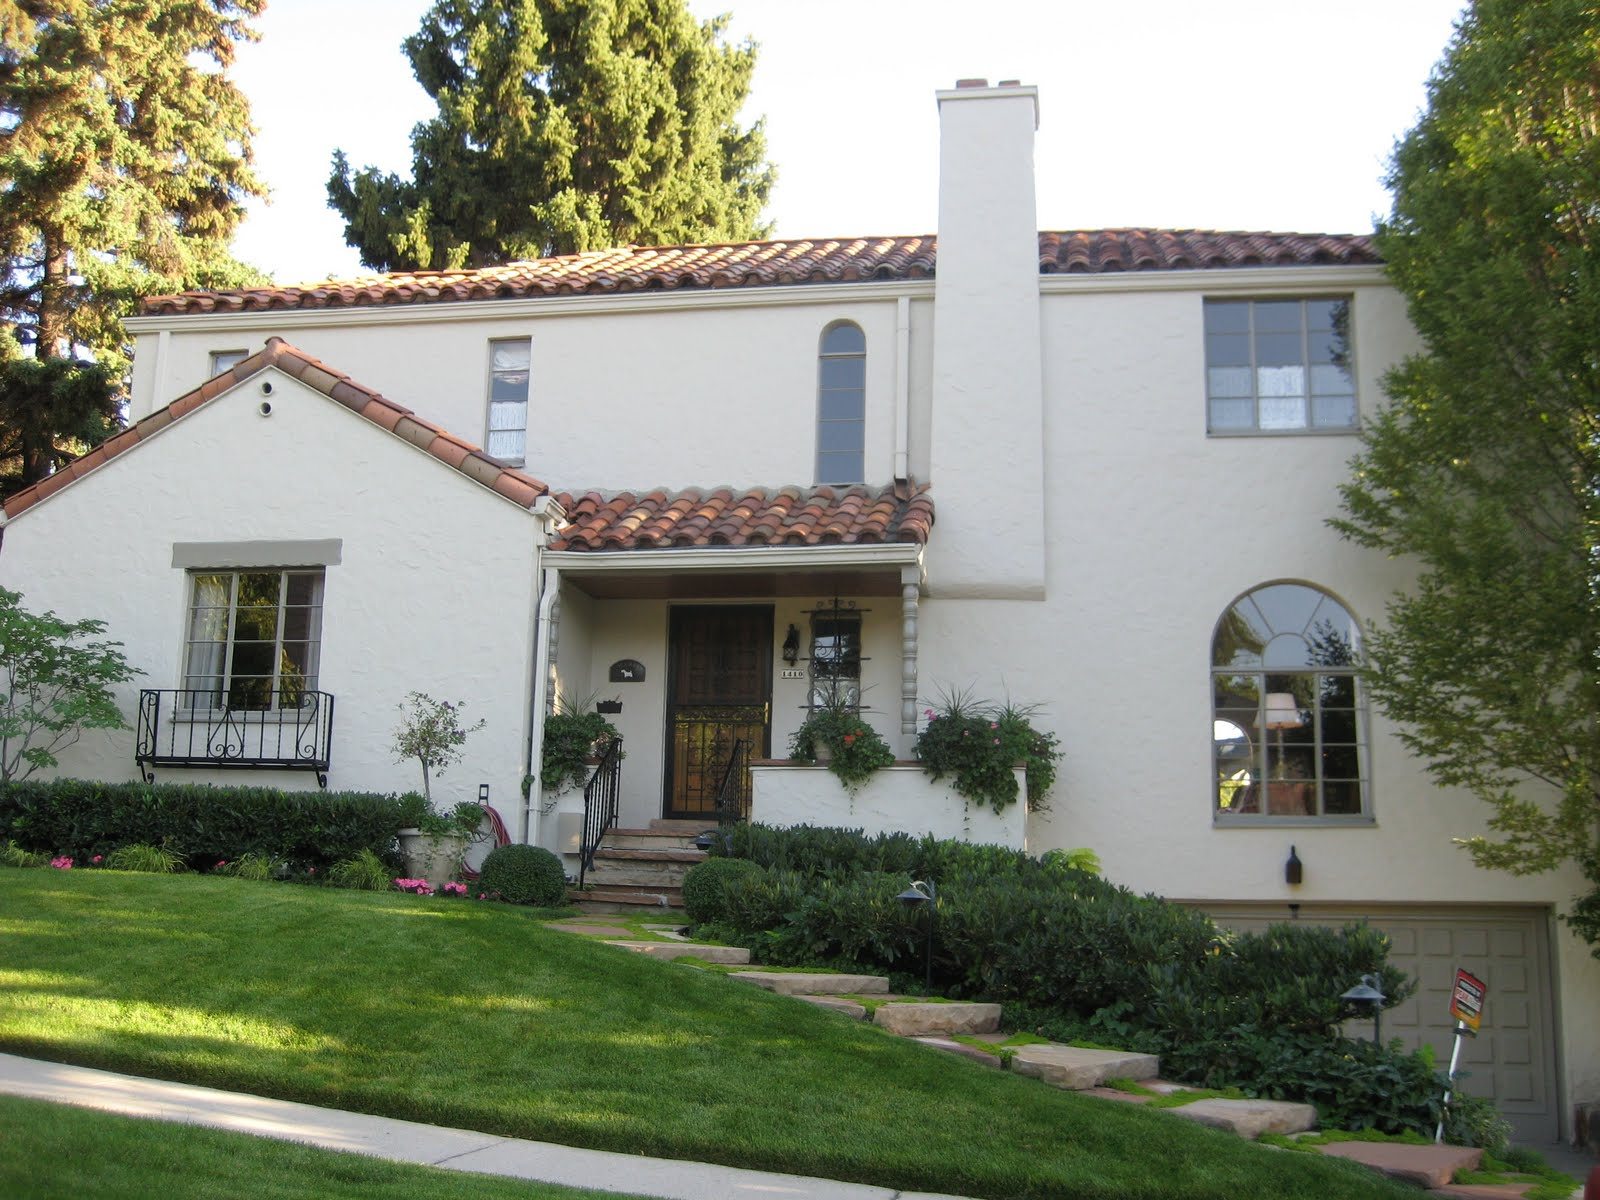 Very fine house slc style stucco houses for Stucco styles